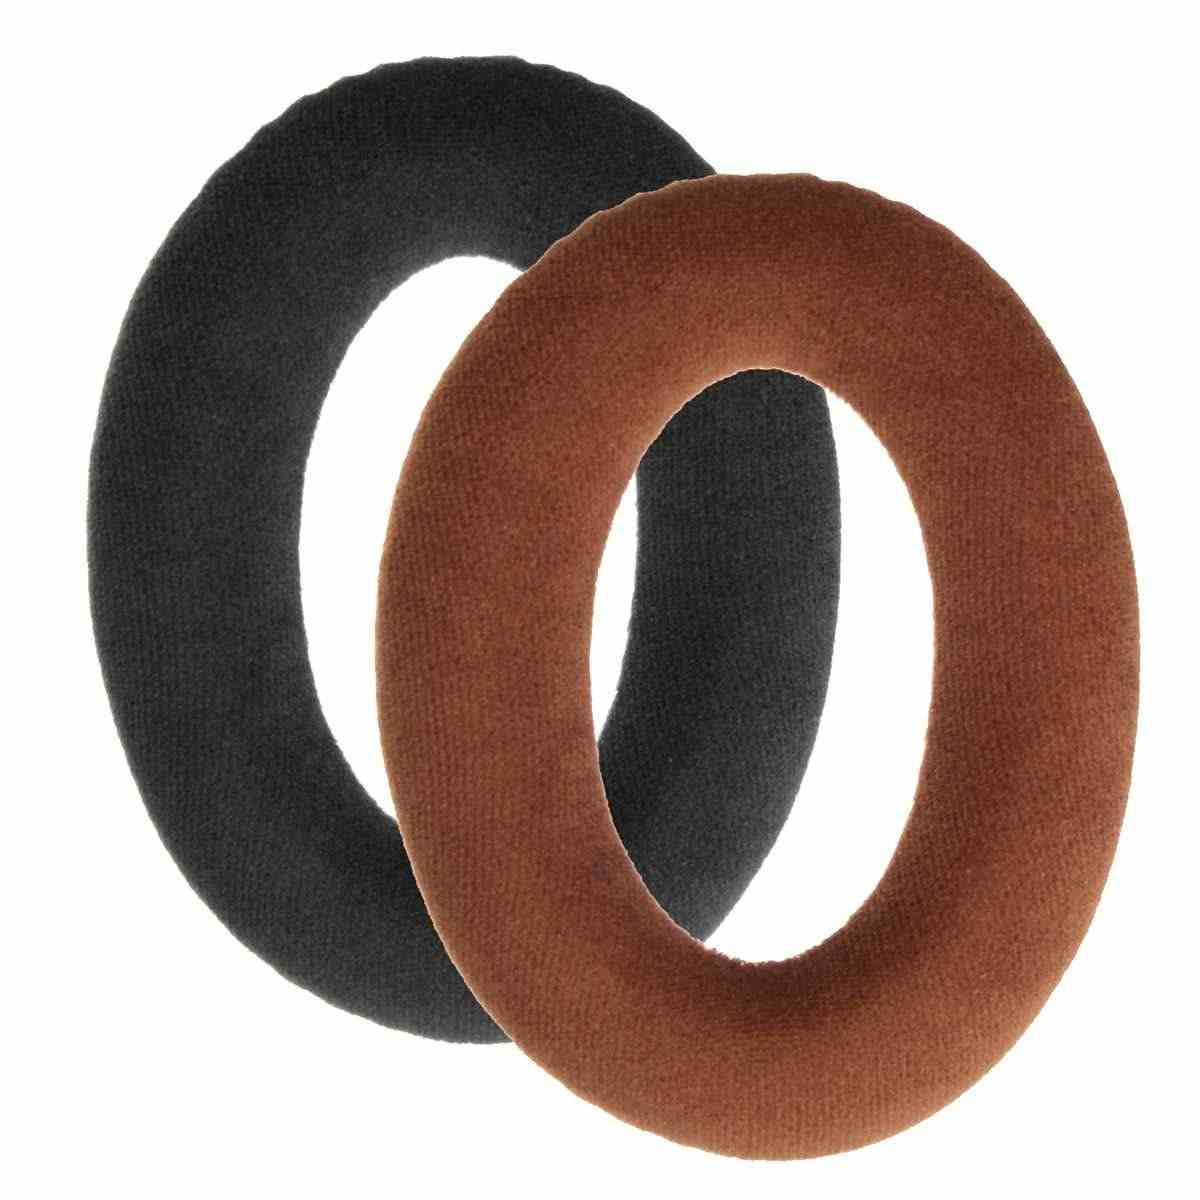 1 Pair Replacement Headphone Earpads for Sennheiser HD598 HD558 HD515 HD598 Cs HD518 HD555 HD595 Headphones Ear Pads Black Brown